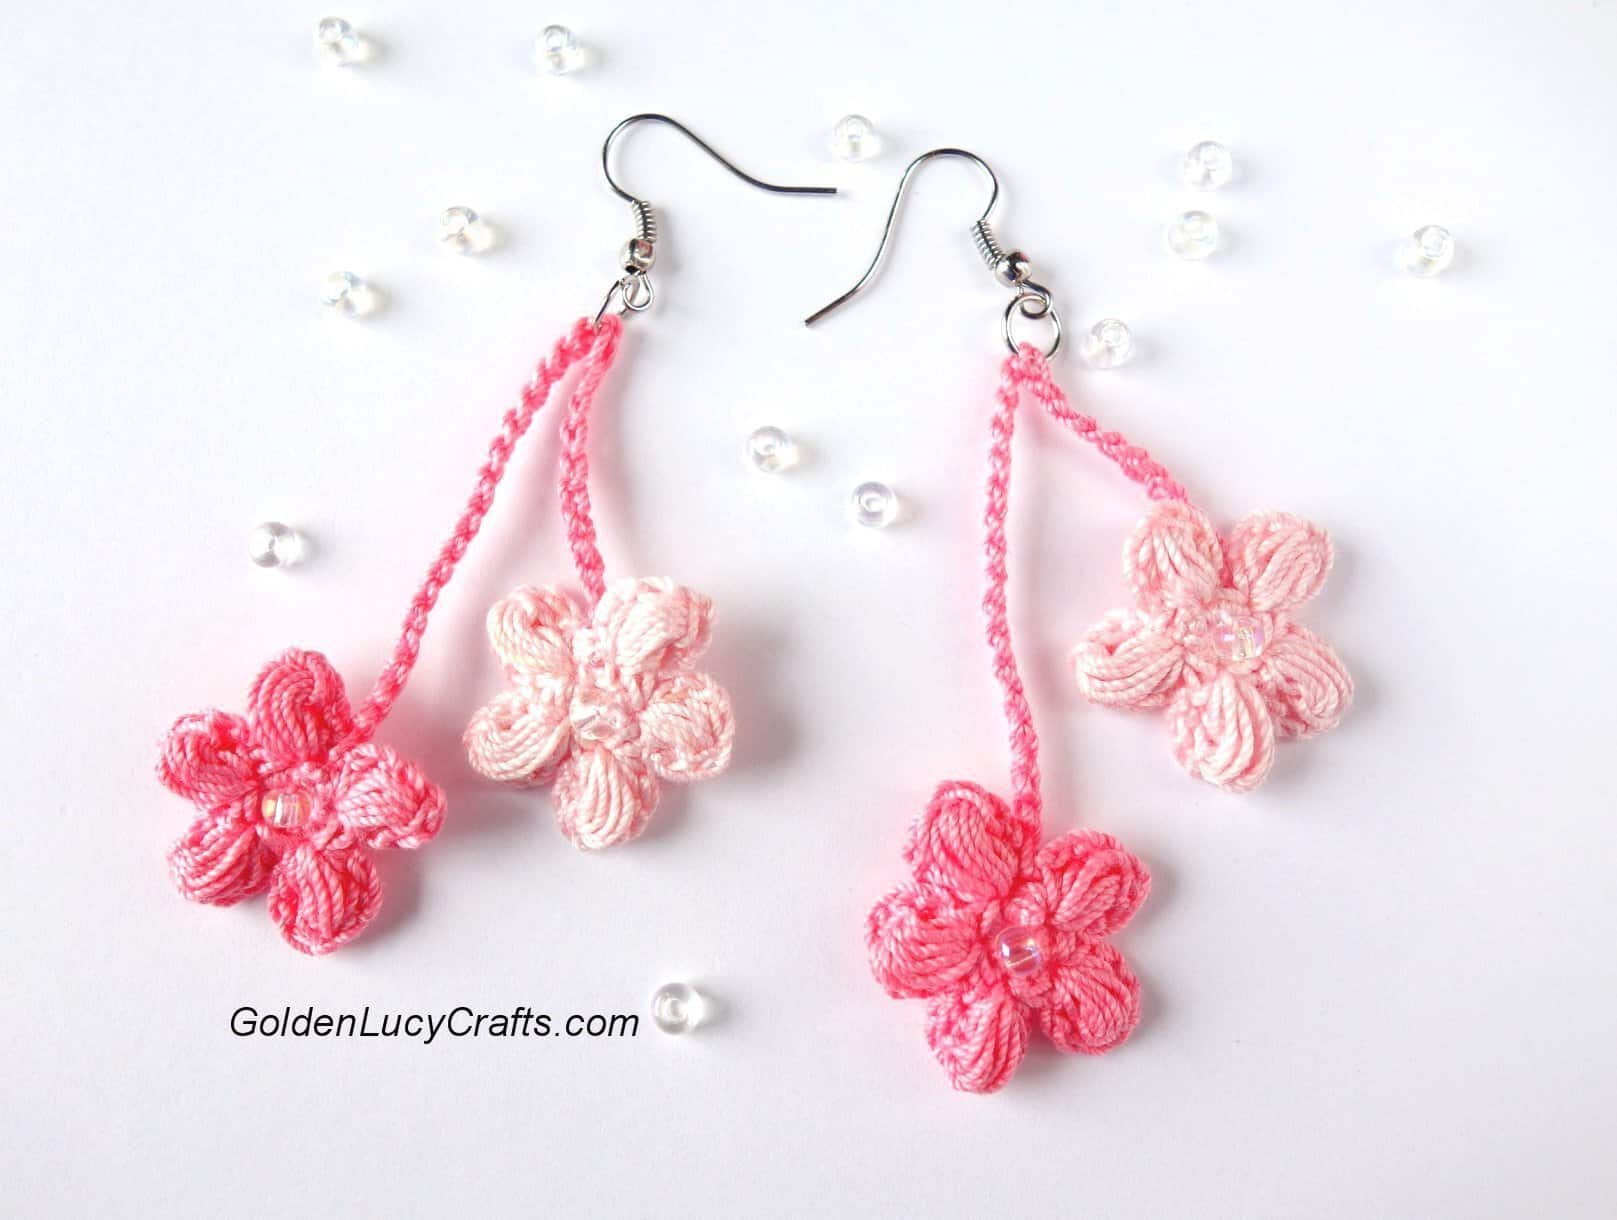 Crochet Earrings Cherry Blossom